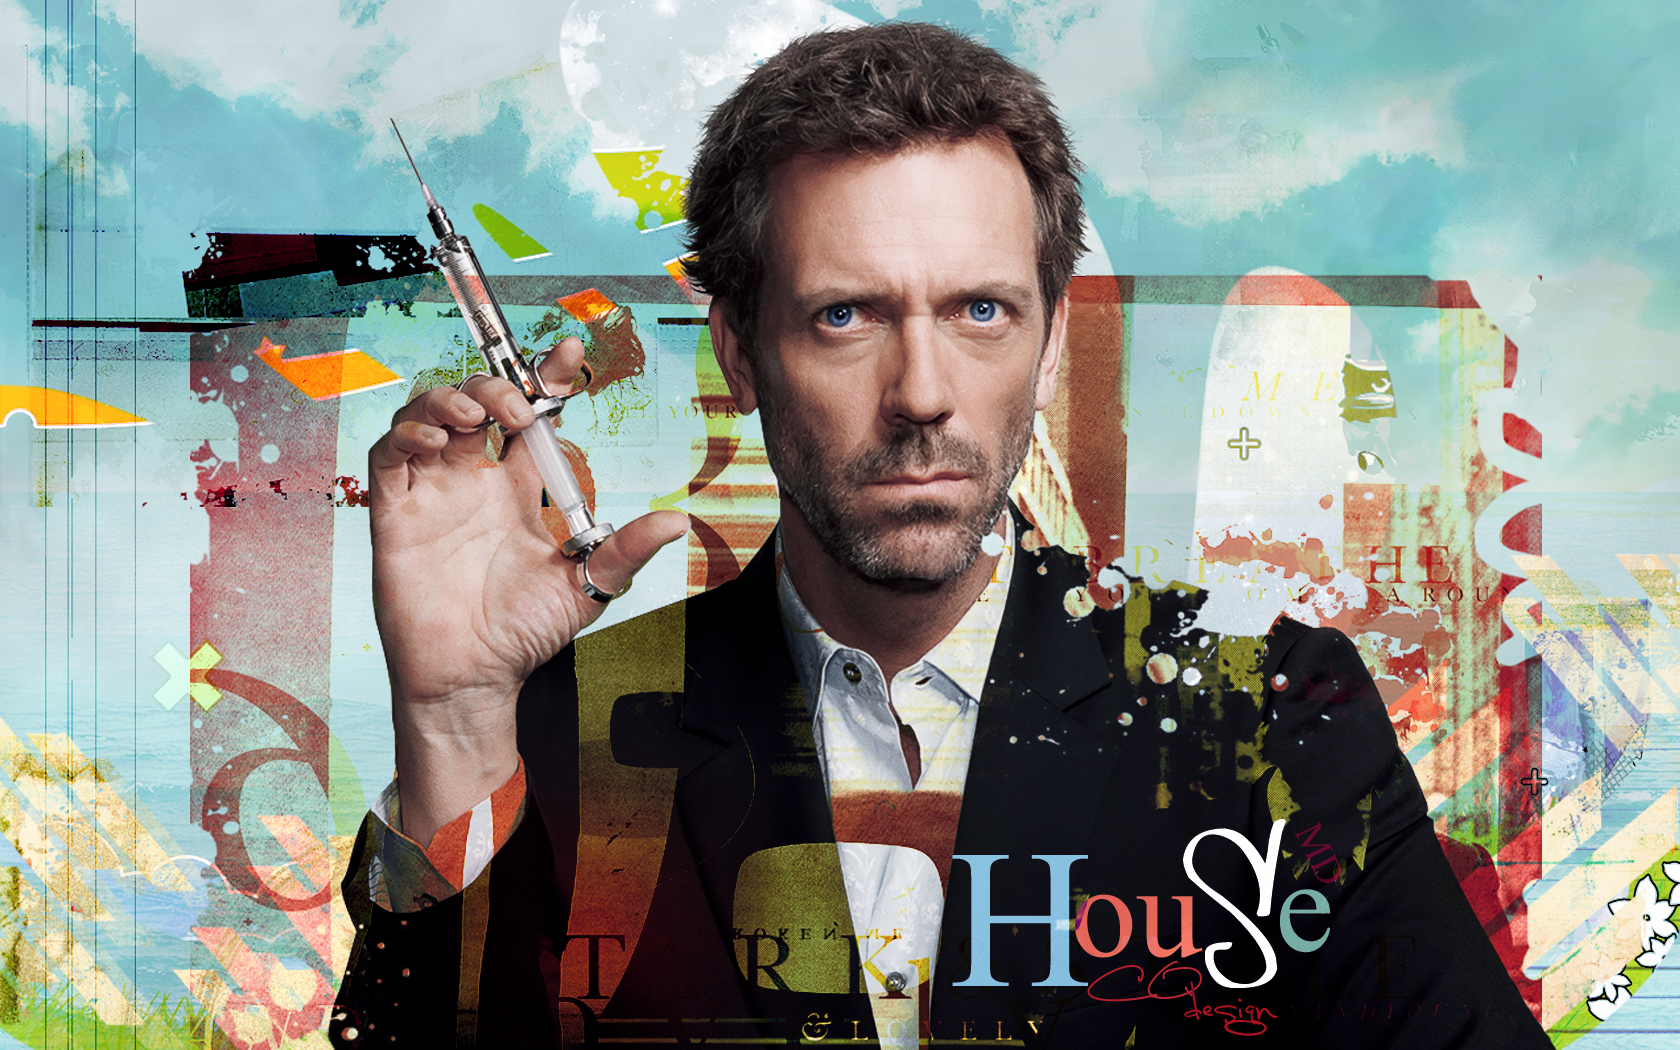 wallpapers of Dr House You are downloading Dr House wallpaper 18 1680x1050